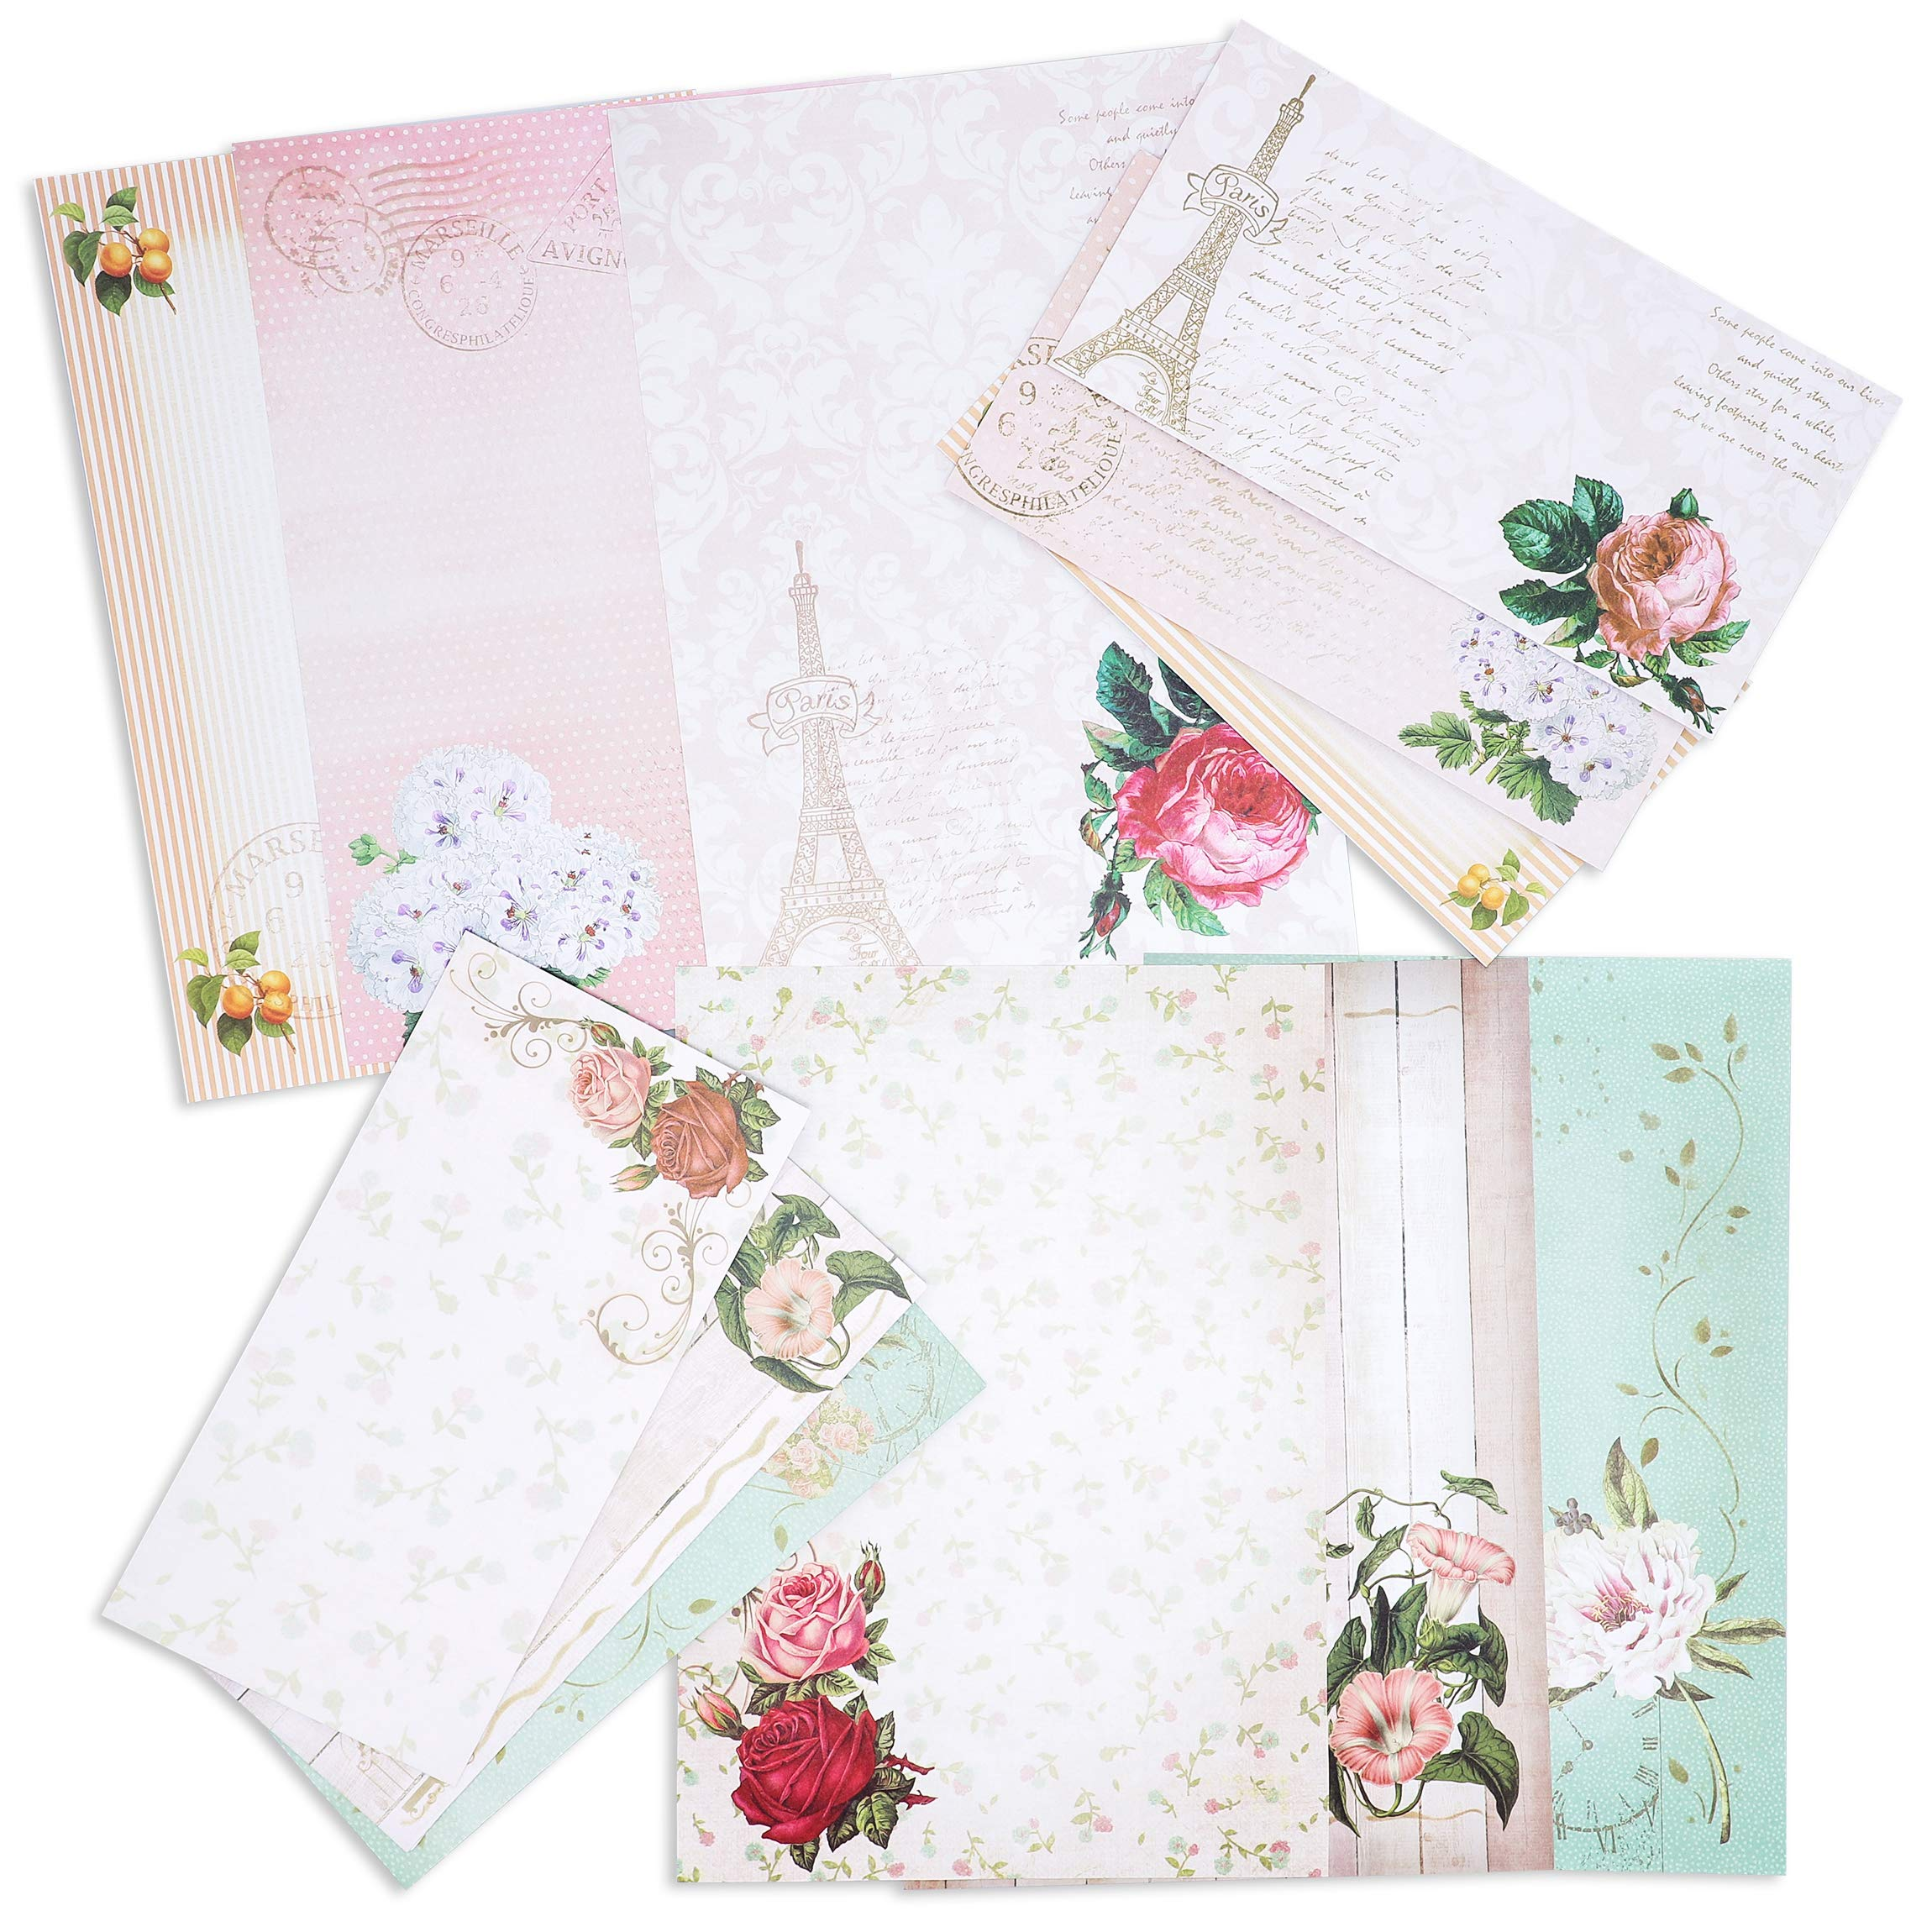 Paper Junkie 60 Sheets One Sided Vintage Floral Letter Stationery 10.2 x 7.25 Inches with 30 Matching Envelopes 8.45 x 4.3 Inches by Paper Junkie